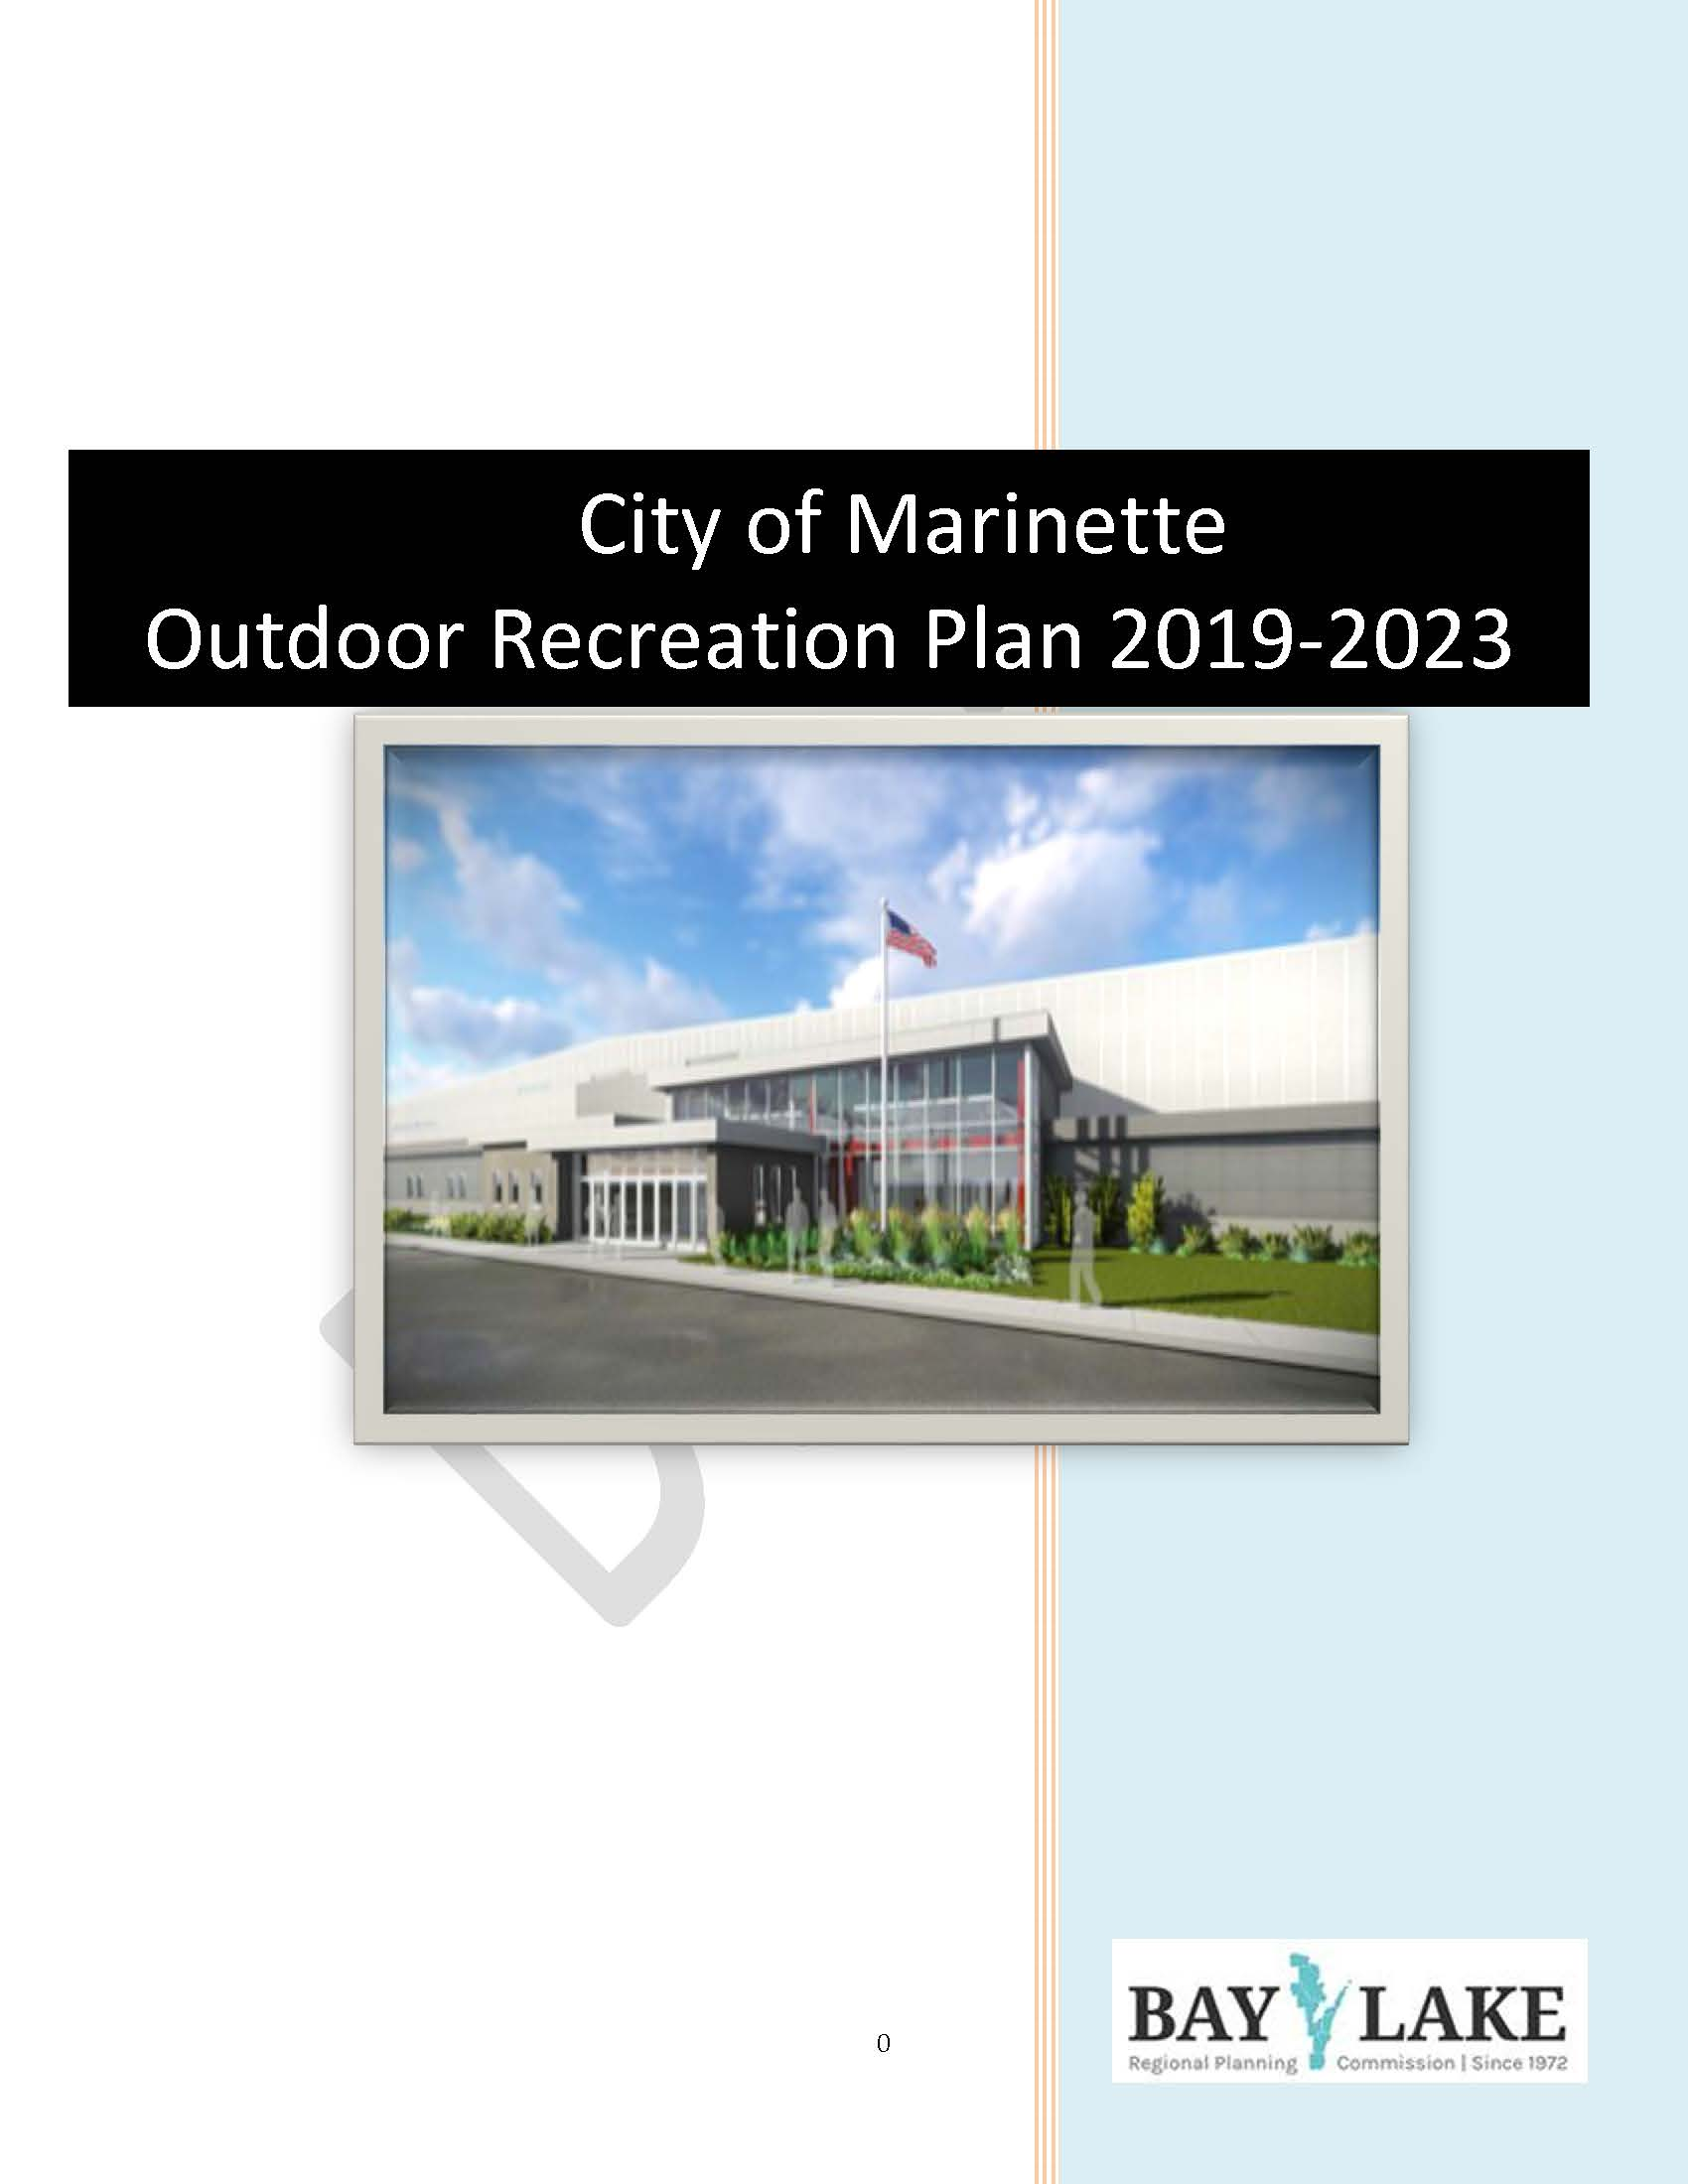 DRAFT CITY of MARINETTE Outdoor Rec Plan 4-30-2019 (3)_Page_01